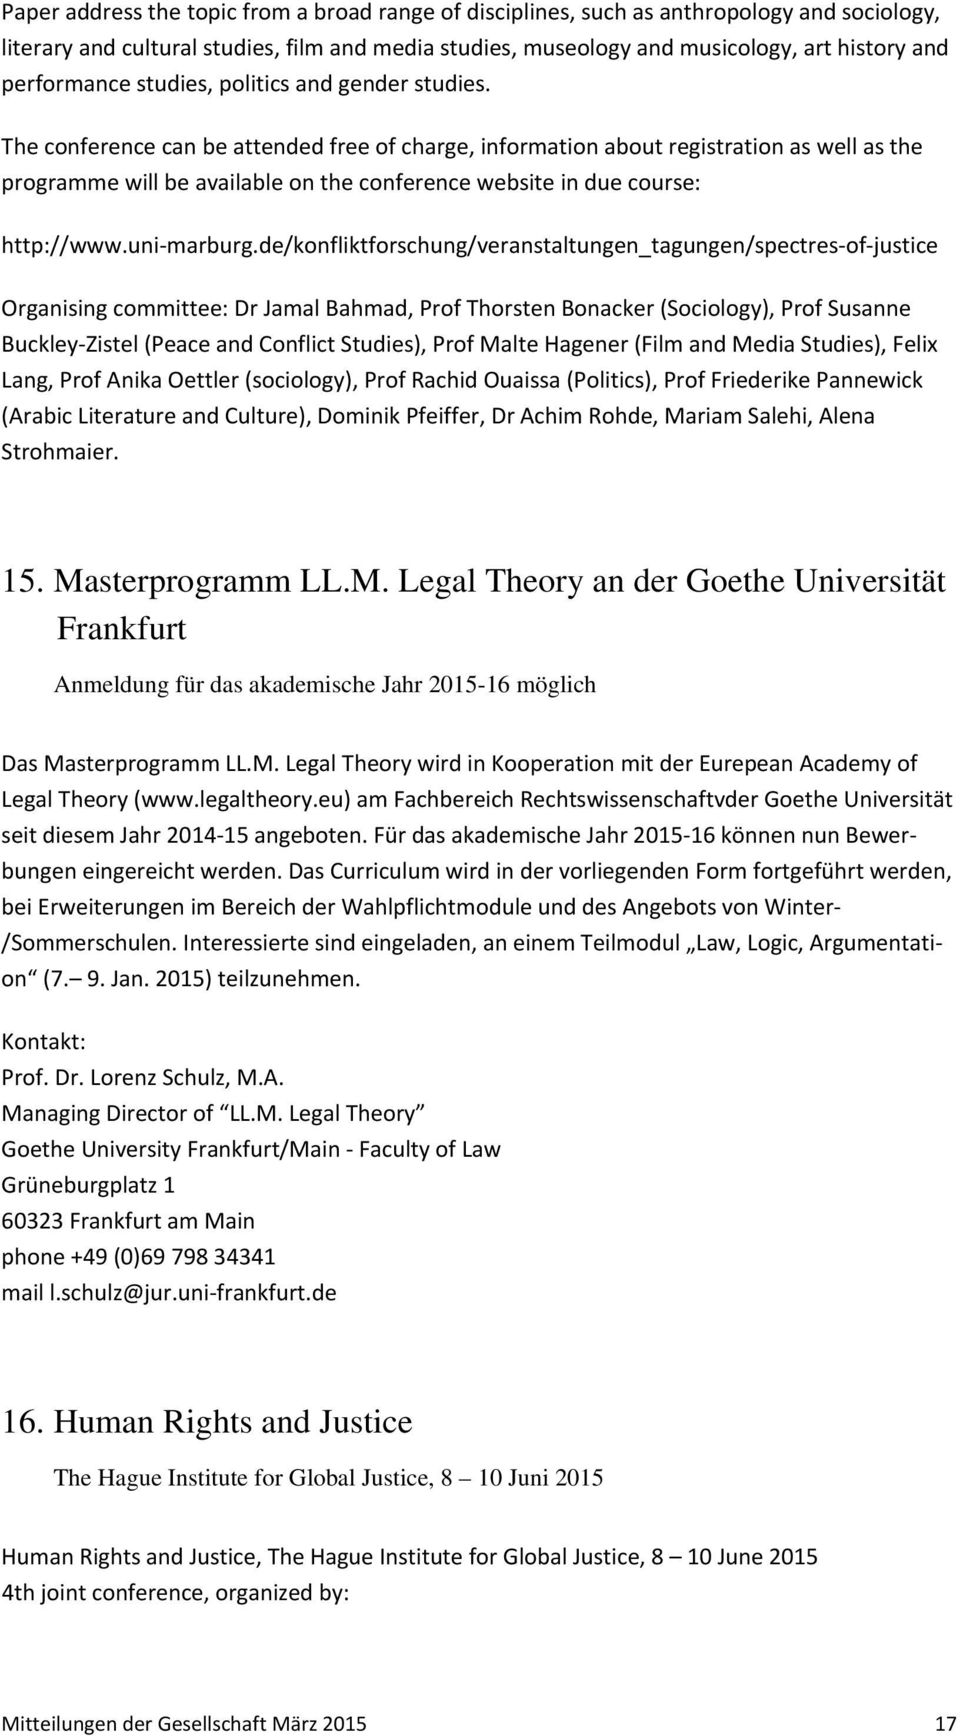 The conference can be attended free of charge, information about registration as well as the programme will be available on the conference website in due course: http://www.uni-marburg.